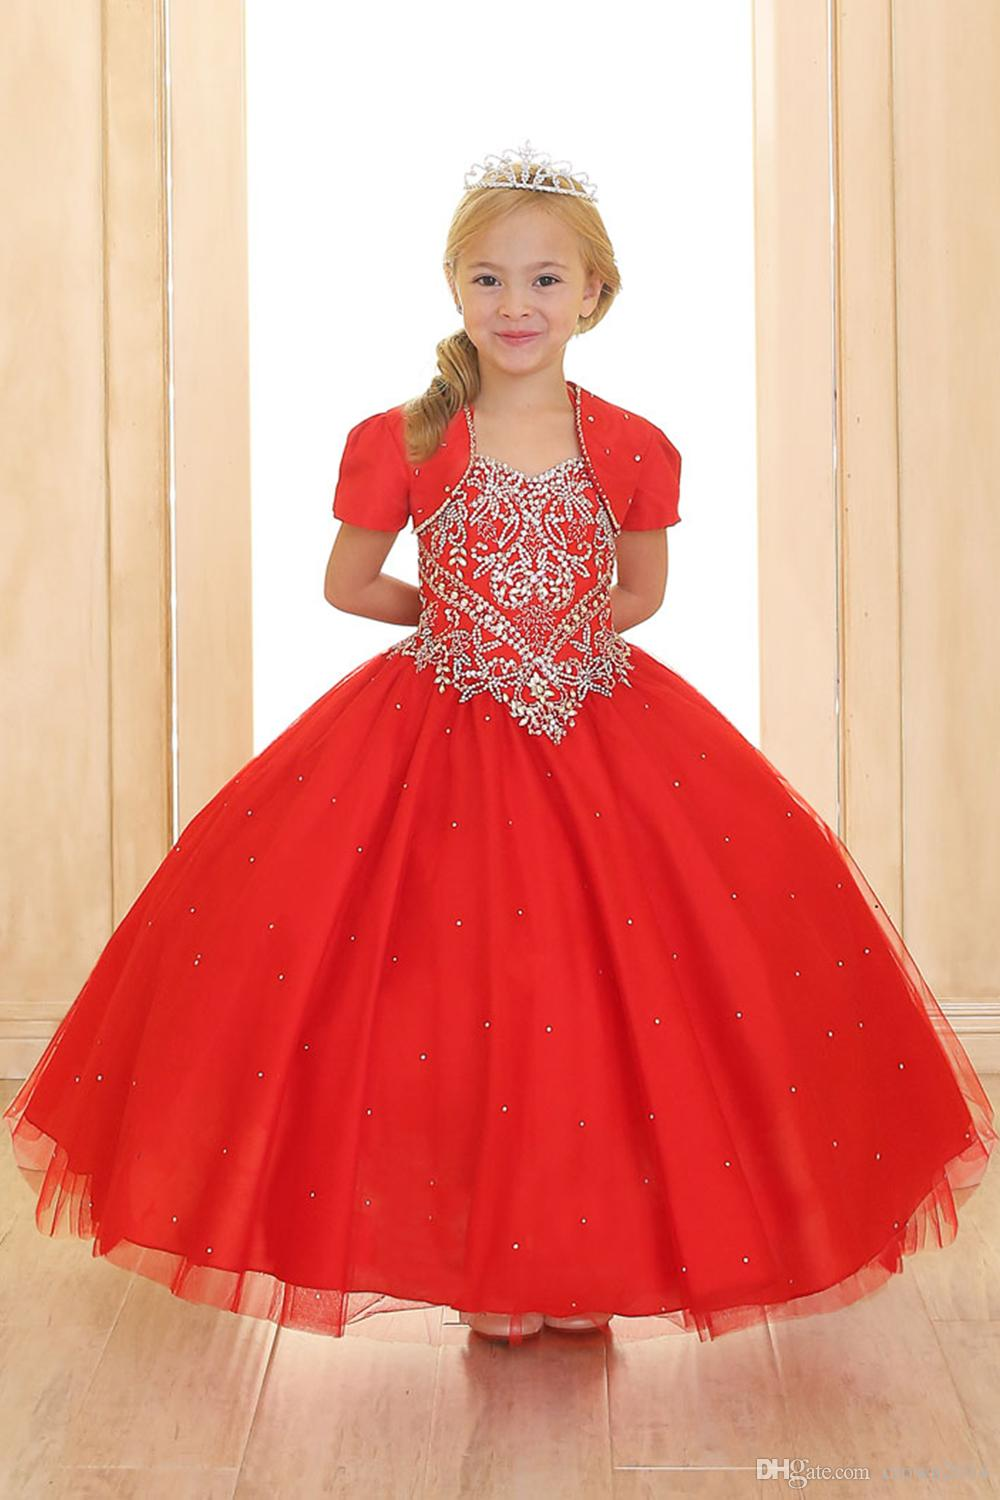 Useful In Stock Girl Ball Gown Pageant Dress Wedding Party Princess Gown Size 10 To Be Distributed All Over The World Clothing, Shoes & Accessories